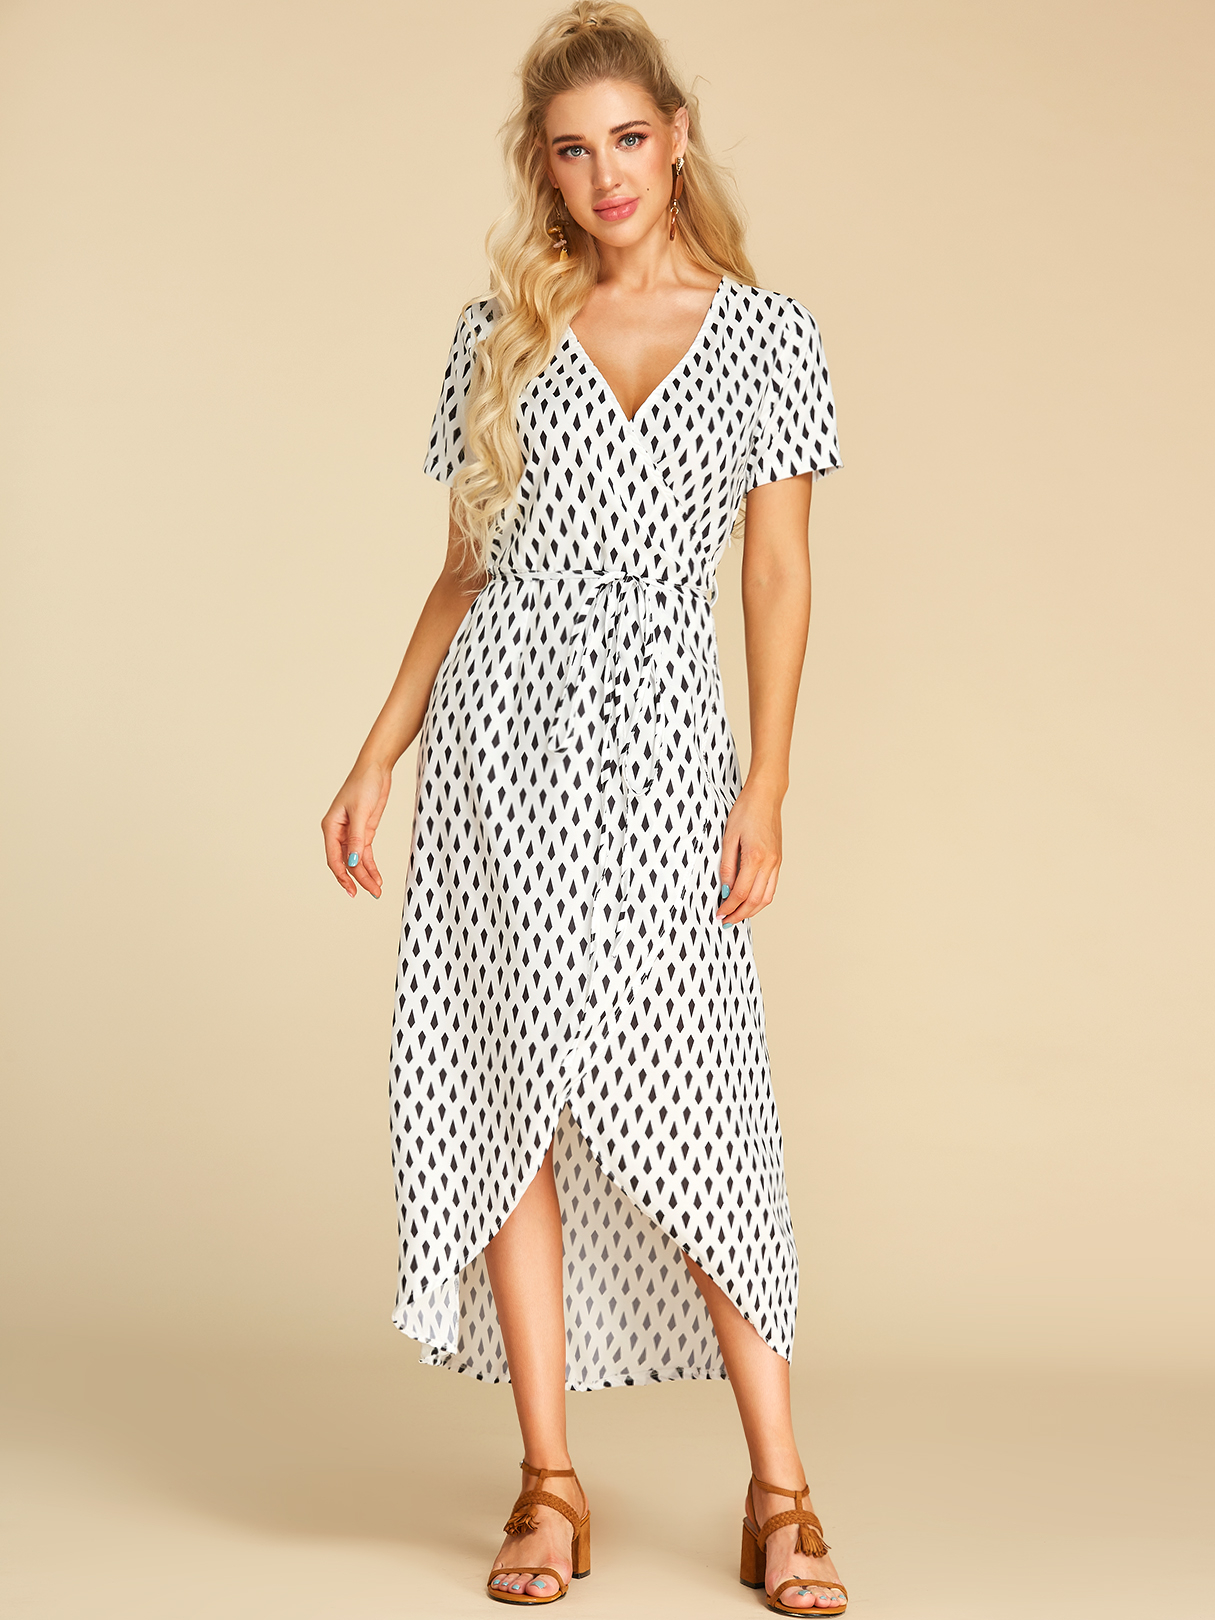 White Lace-up Design Polka Dot V-neck Short Sleeves Dress ROBES Blanc  xs|s|m|l Yoins